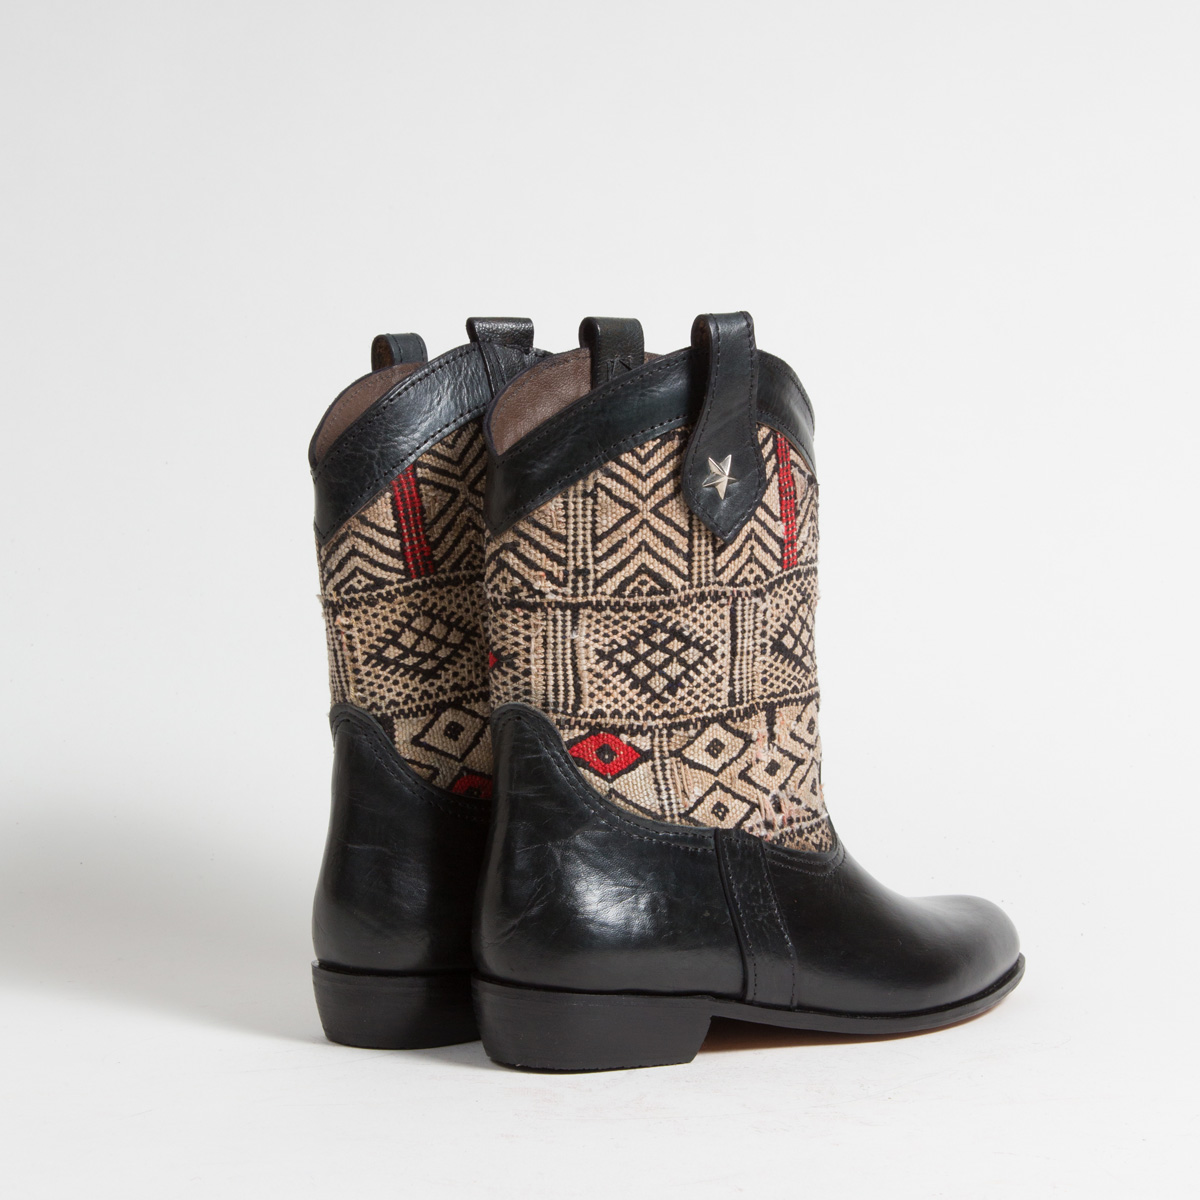 Bottines Kilim cuir mababouche artisanales (Réf. MN15-41)